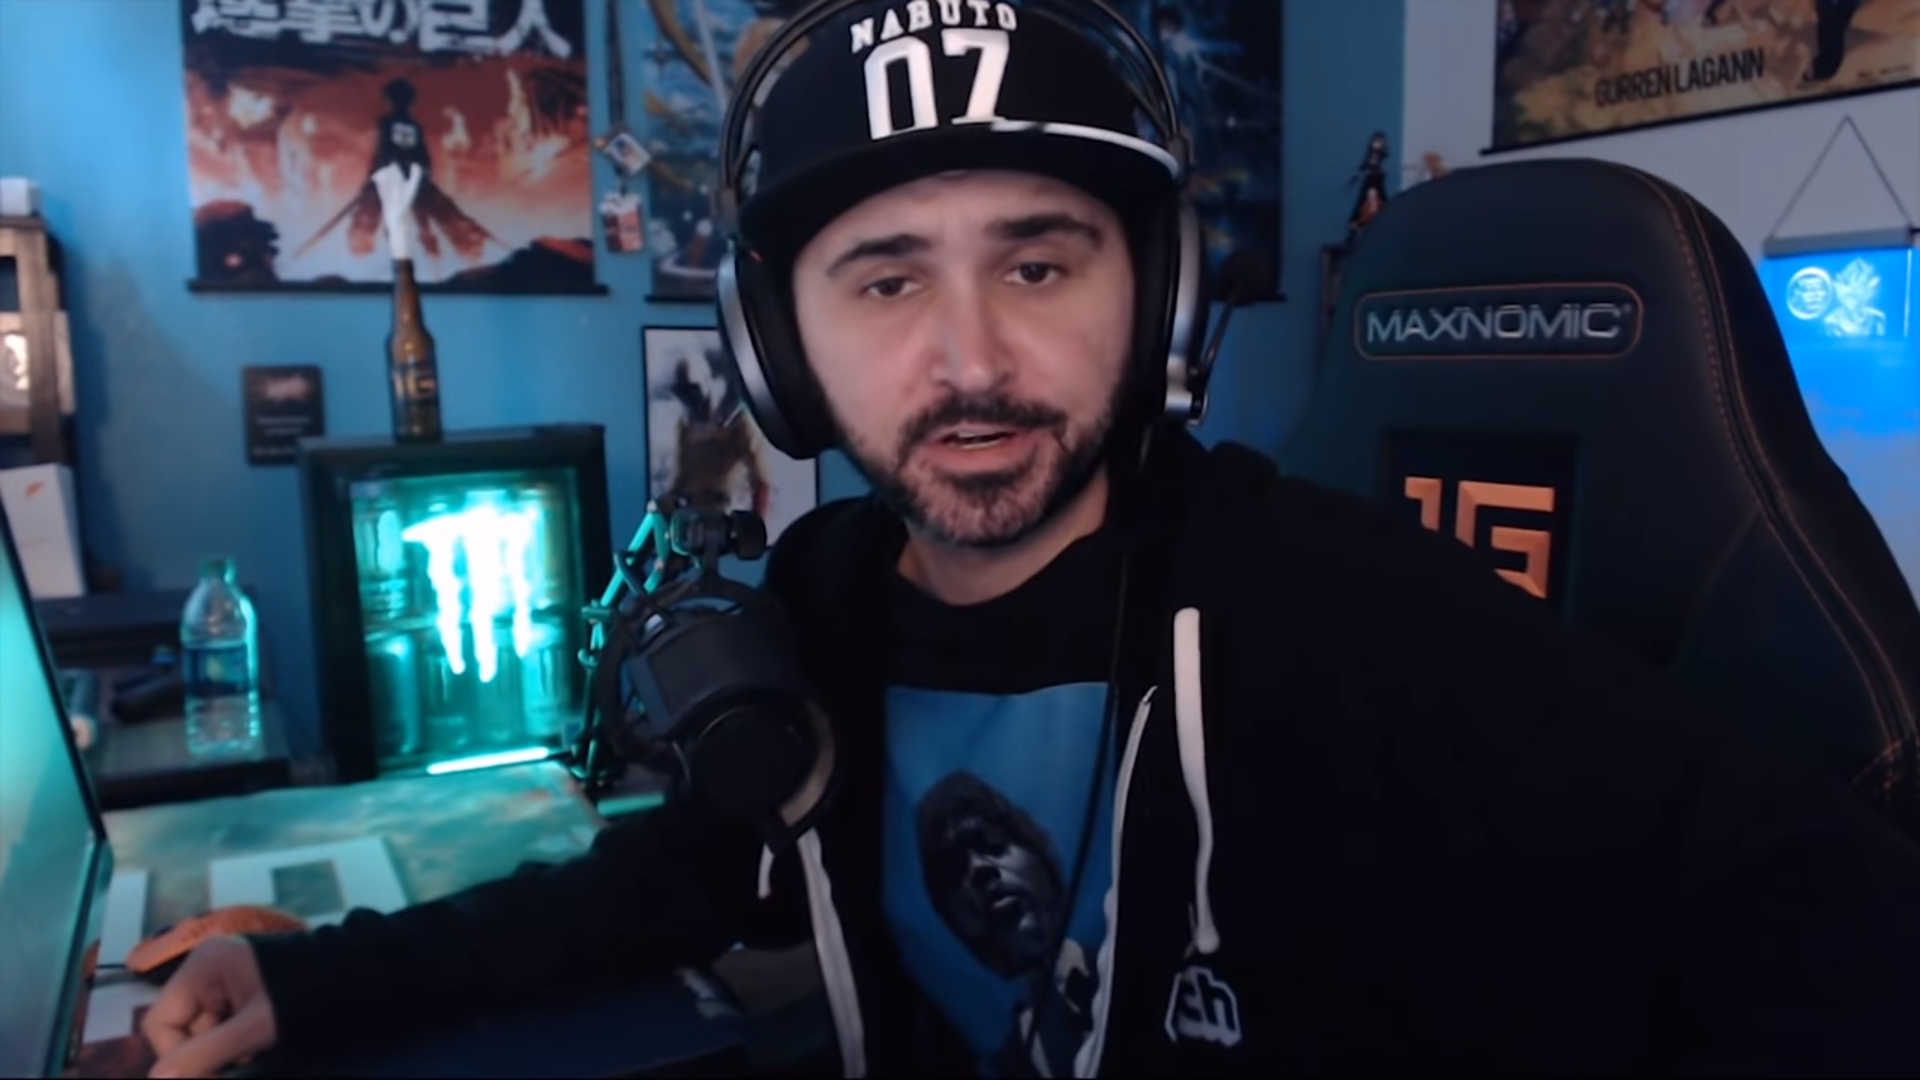 Summit1g says the Krieg needs to be nerfed in CS:GO